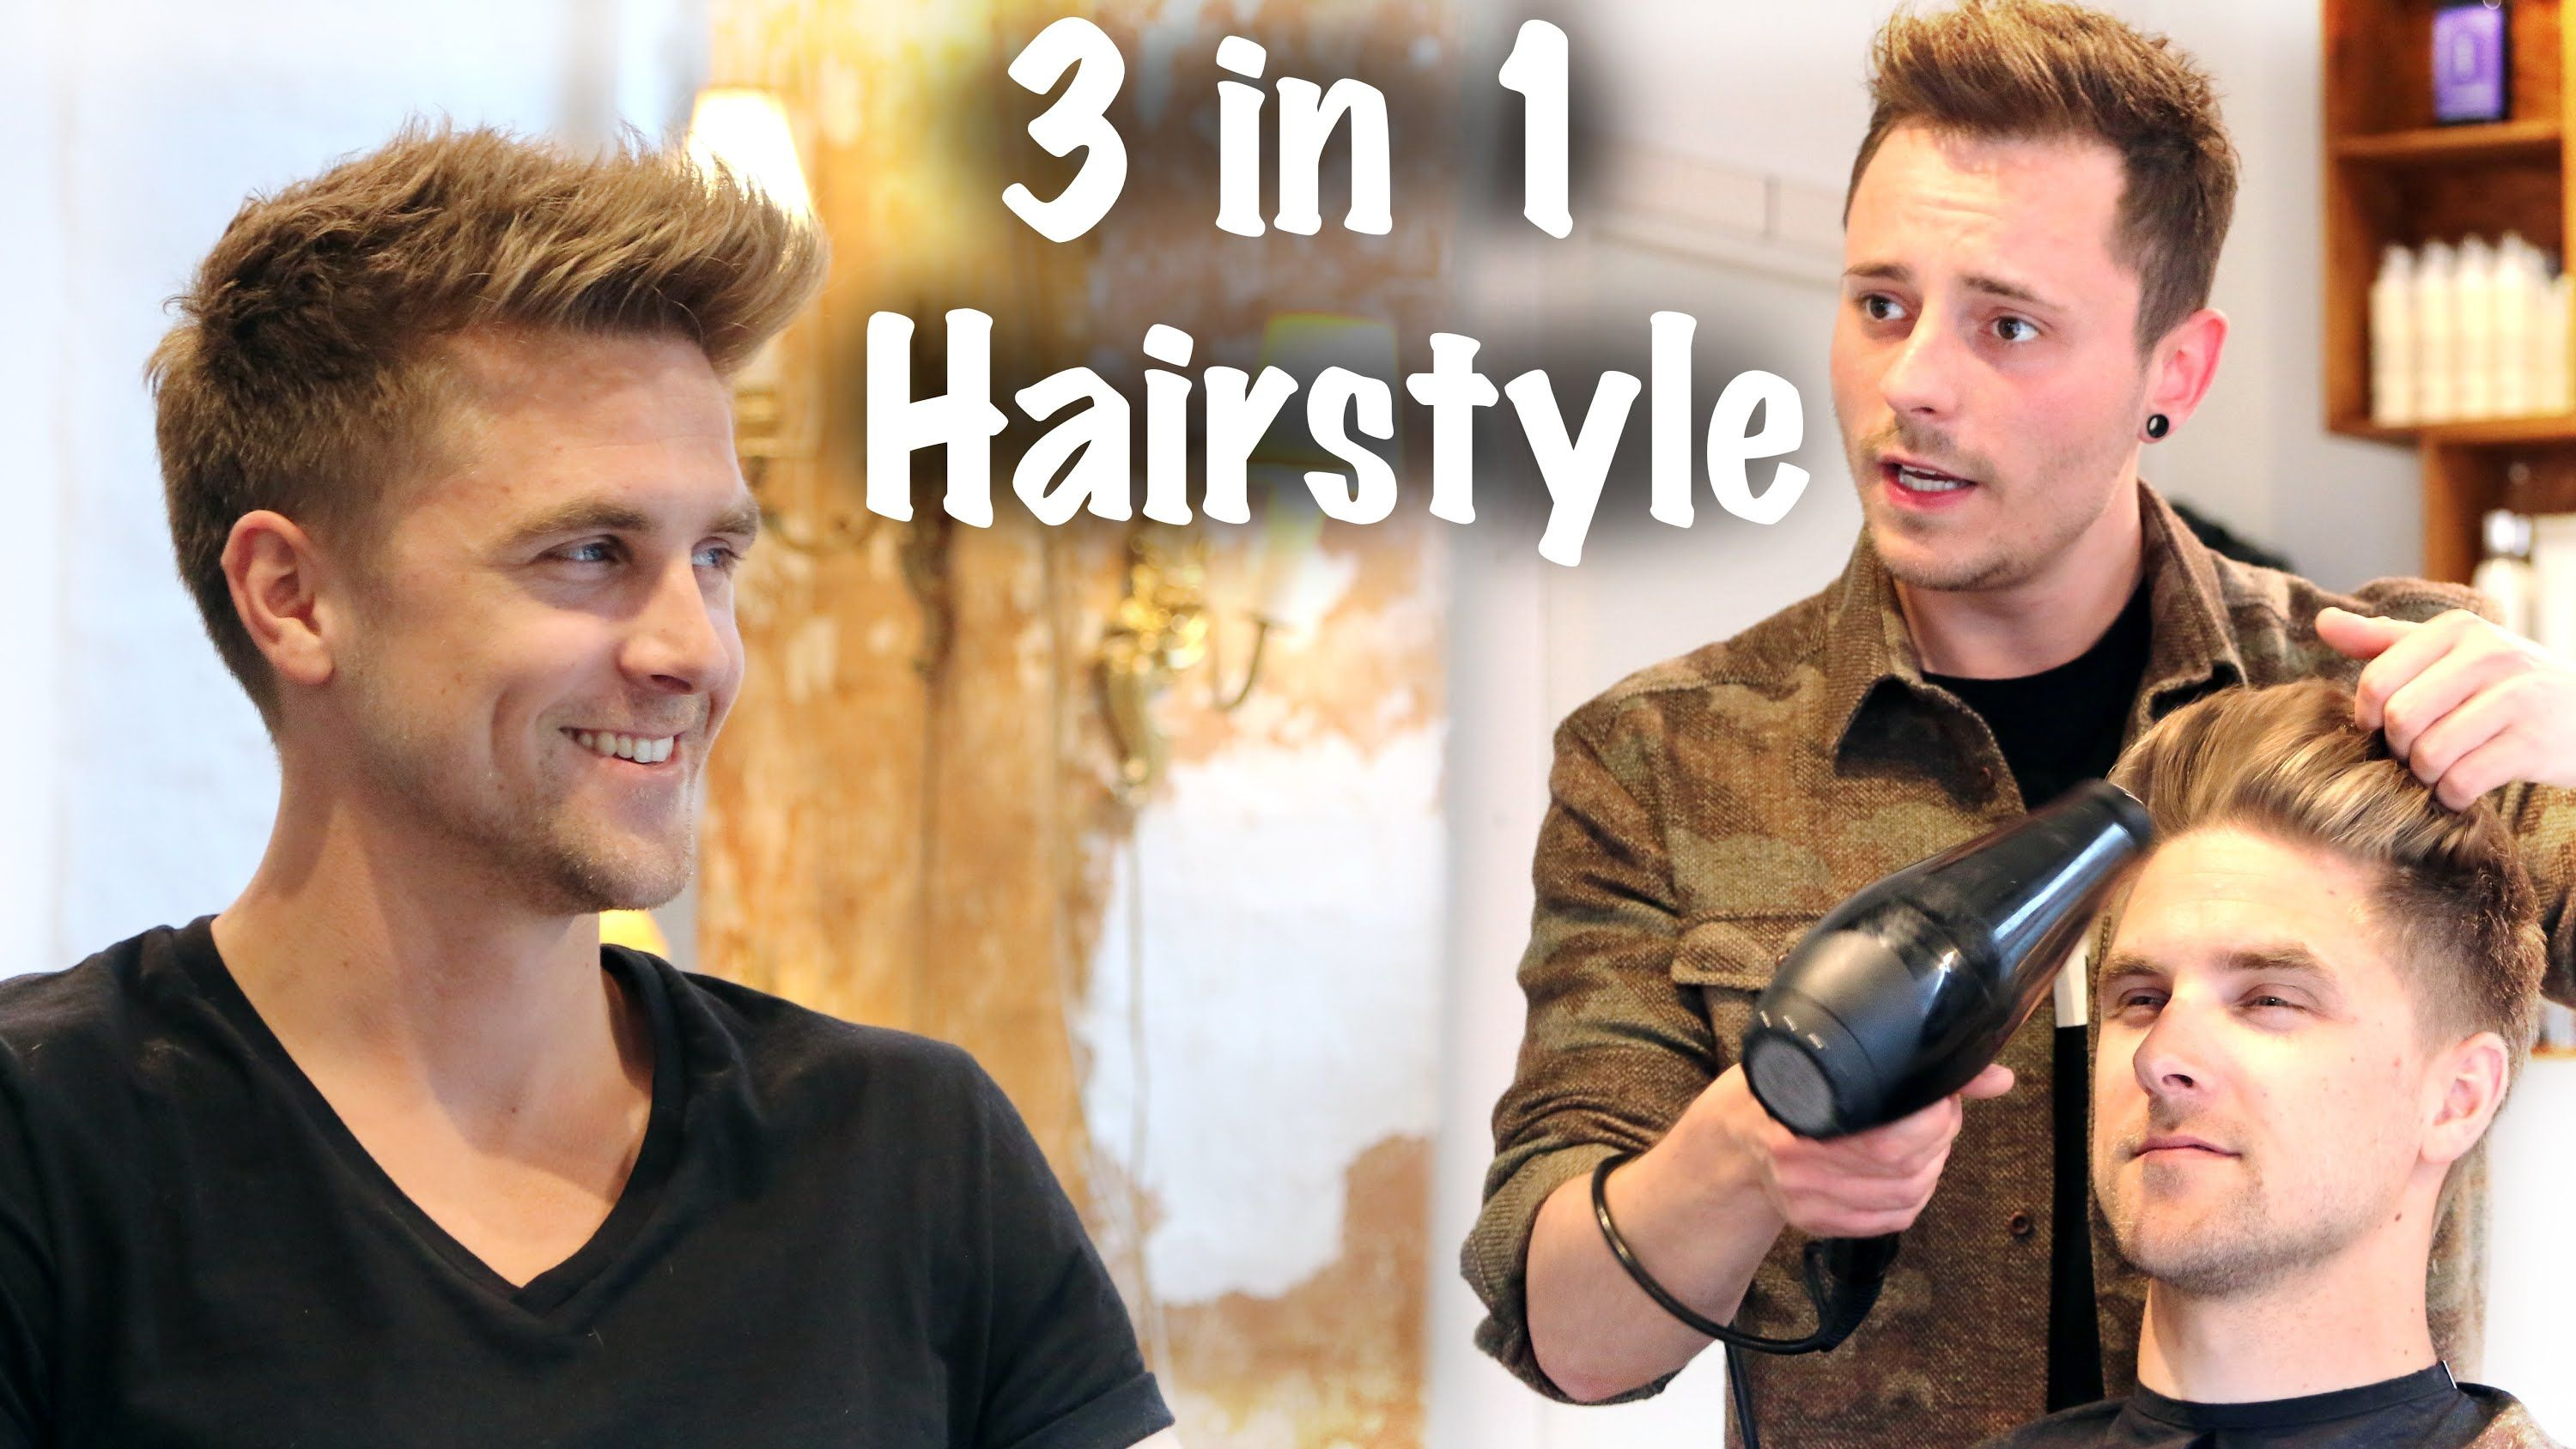 Amazing 3 Hairstyles In 1 Haircut ☆ Professional Hair Inspiration For Men